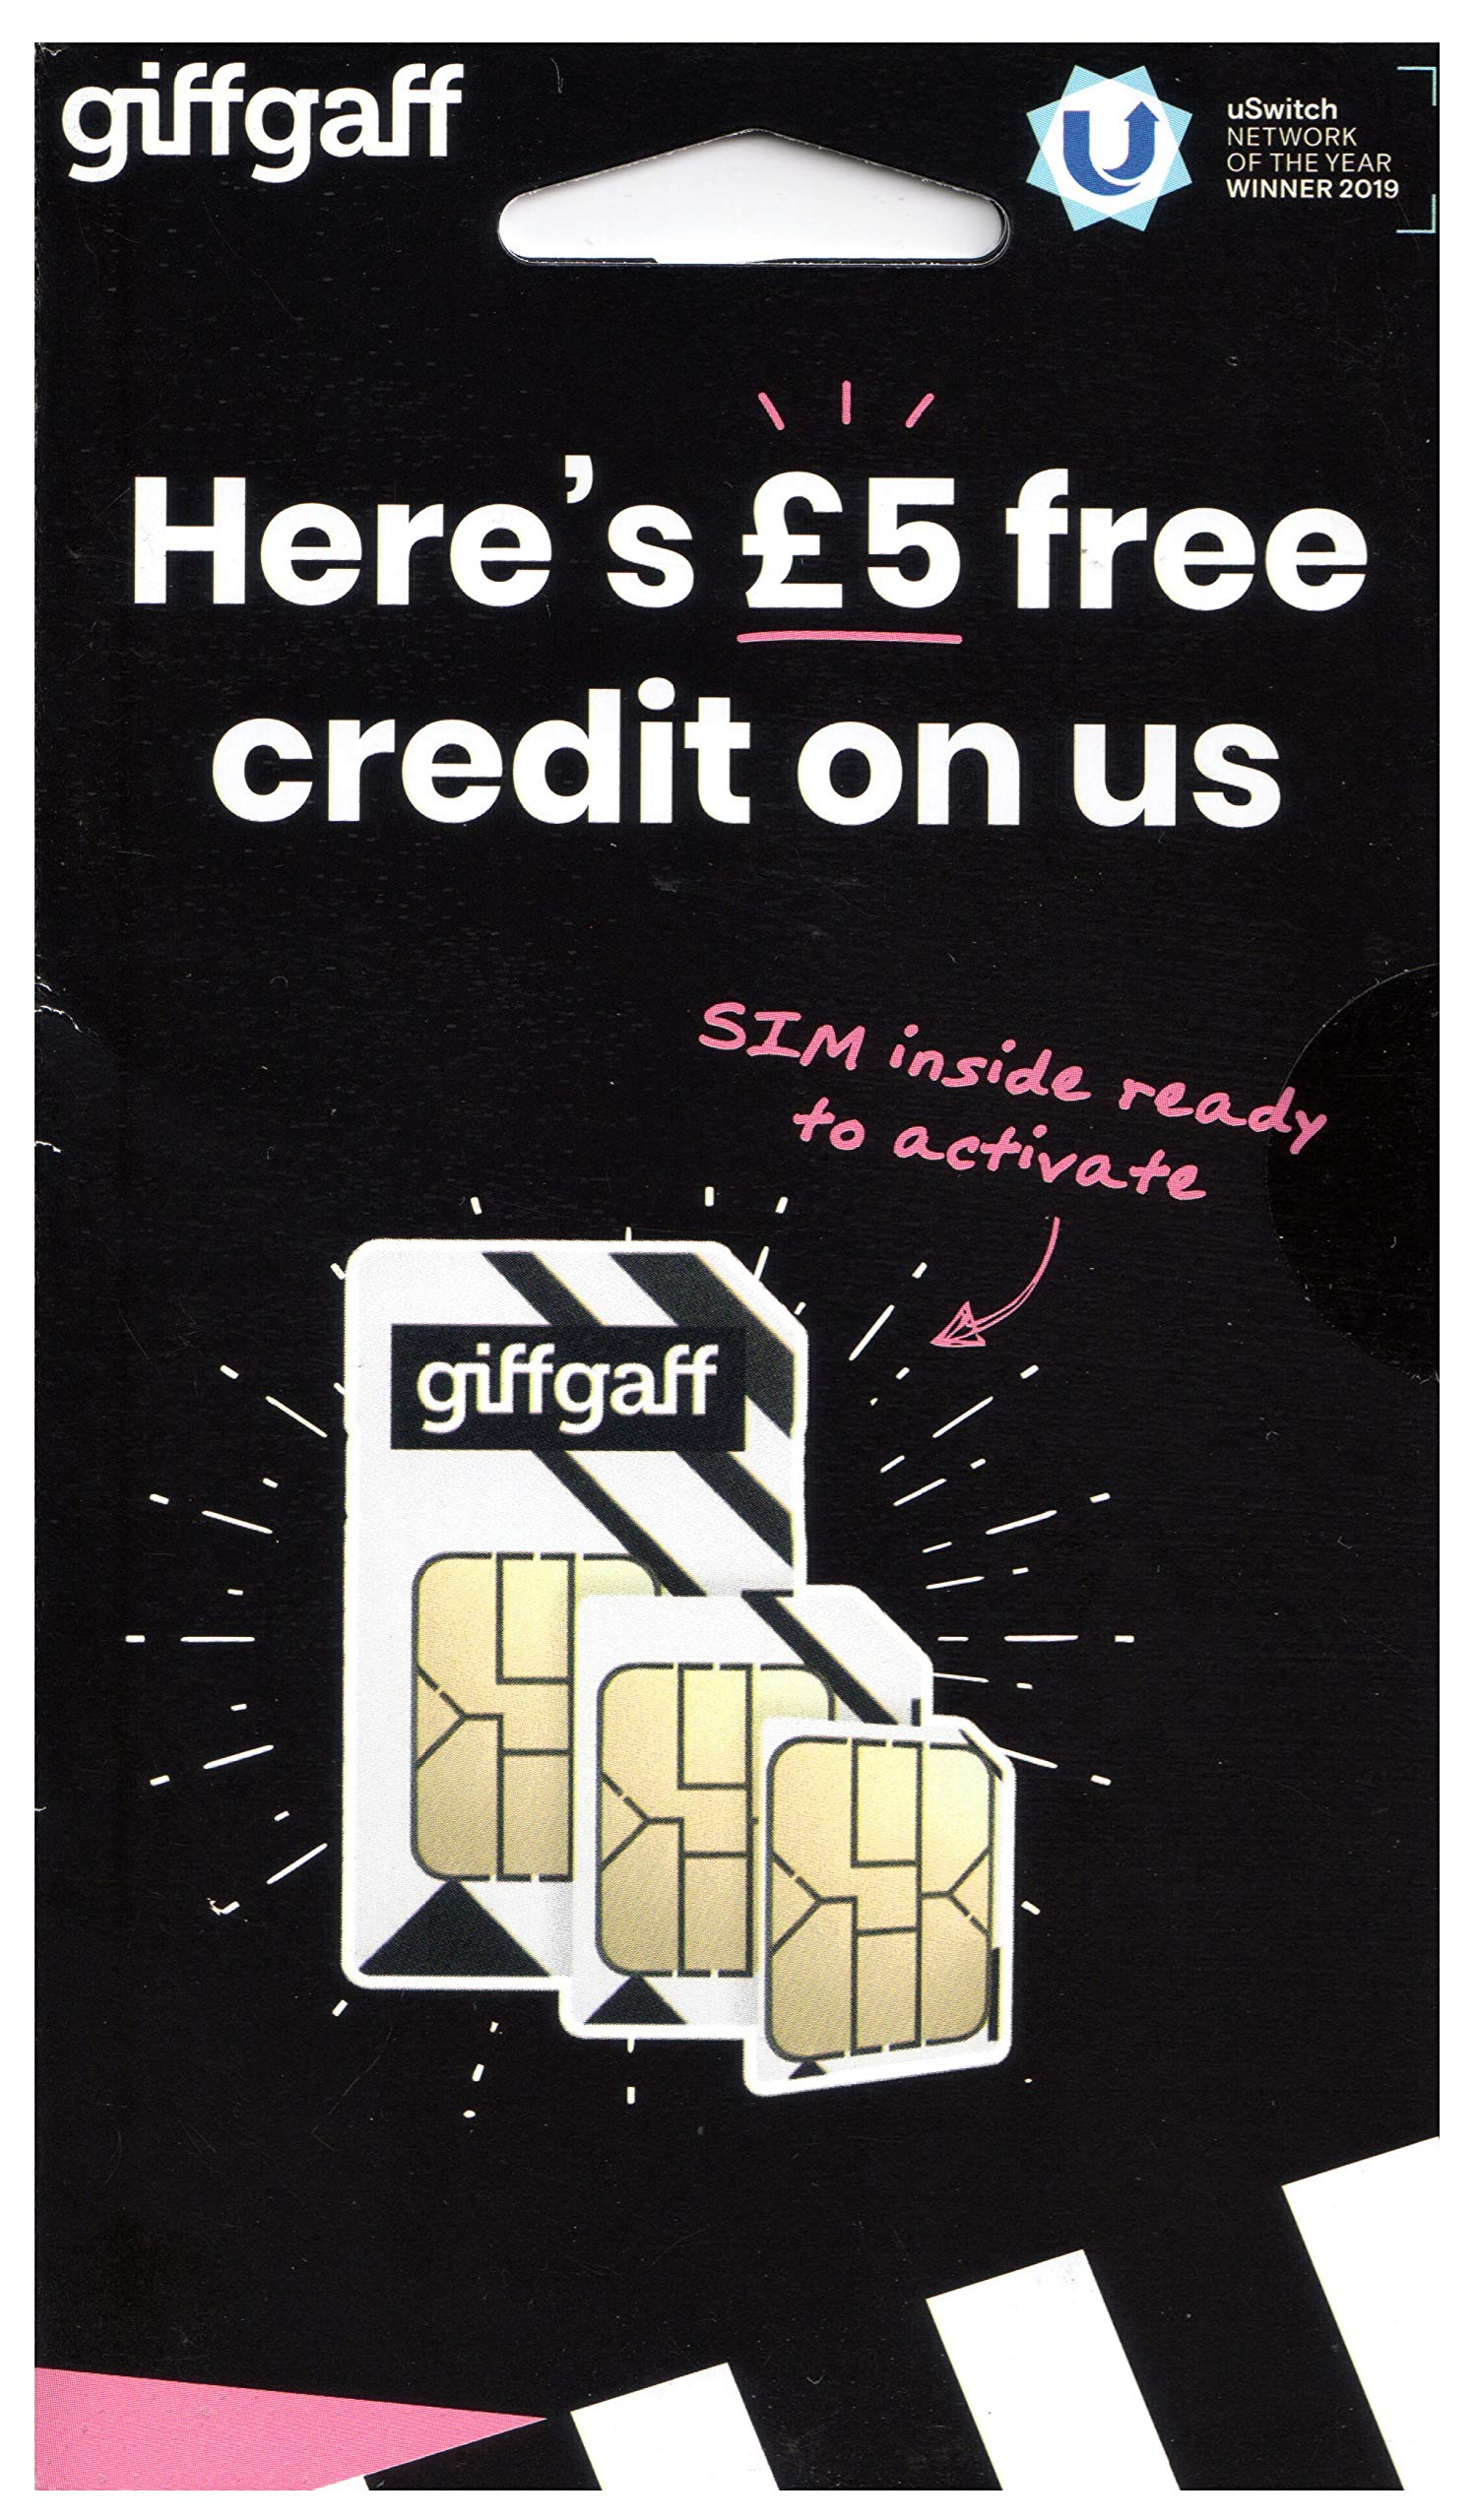 Giffgaff Multi Sim (Standard/Micro & Nano). £5 Bonus Credit Added When You Topup £10 First Time. Unlimited Calls, Texts, Data. Fits All Devices - iPhones, iPads, Tablets, Androids, Dongles & Wifi